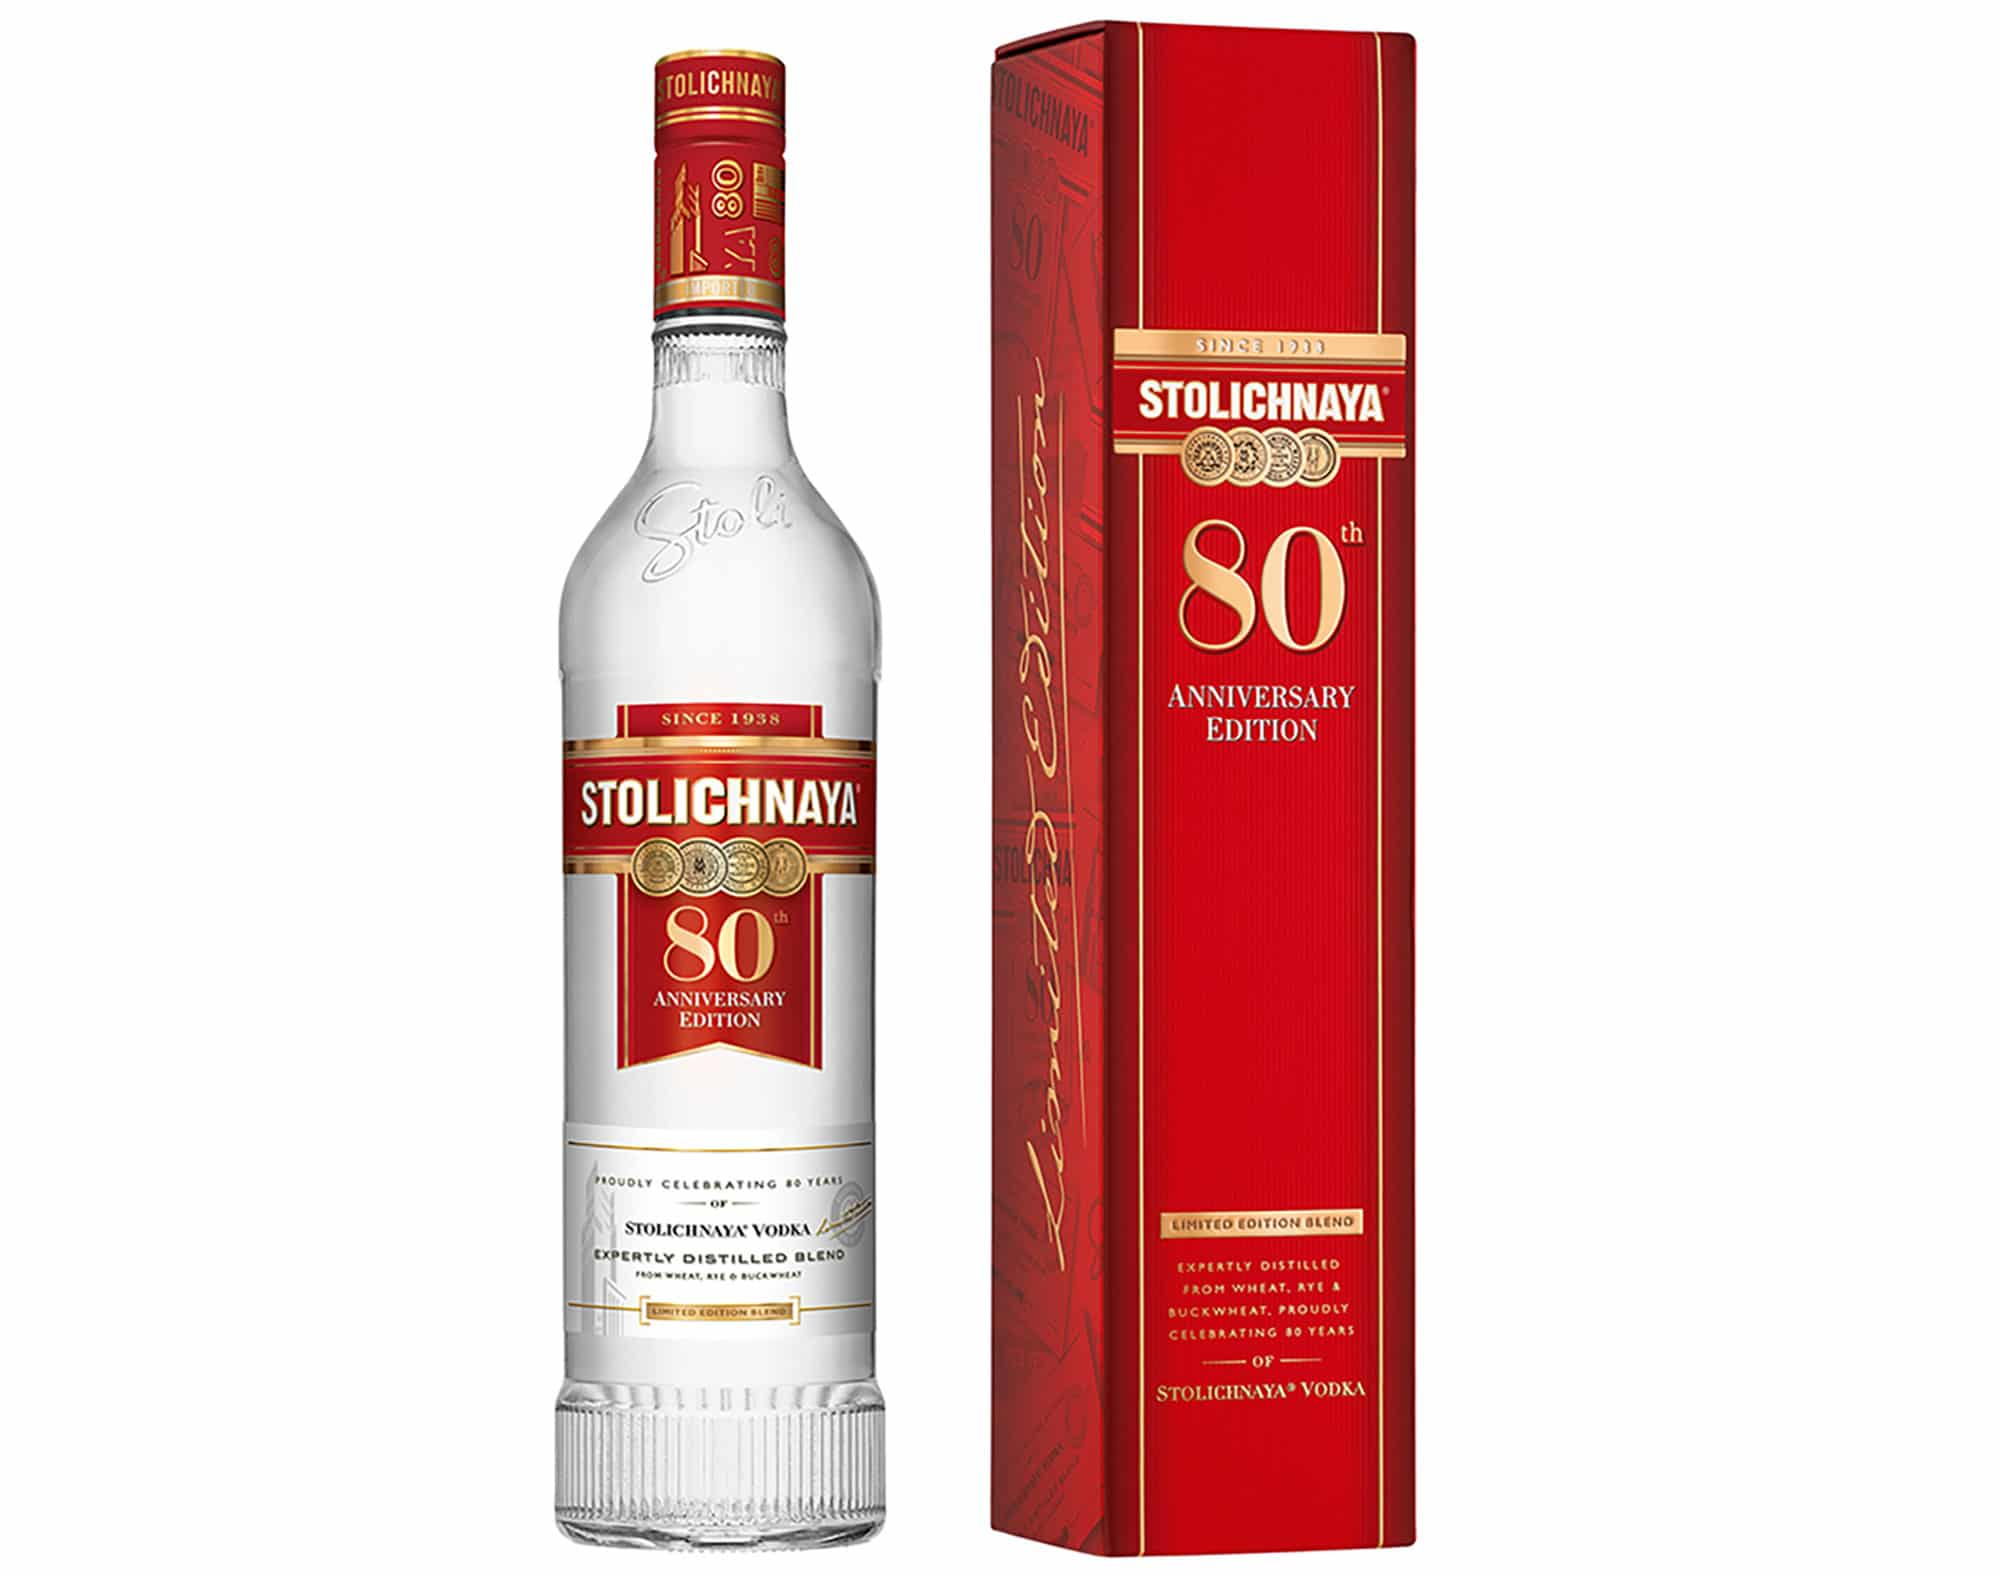 Stoli Vodka 80th anniversary vodka featured a variation of the traditional Stolichnaya recipe, a limited edition bottle and a decorative gift box.